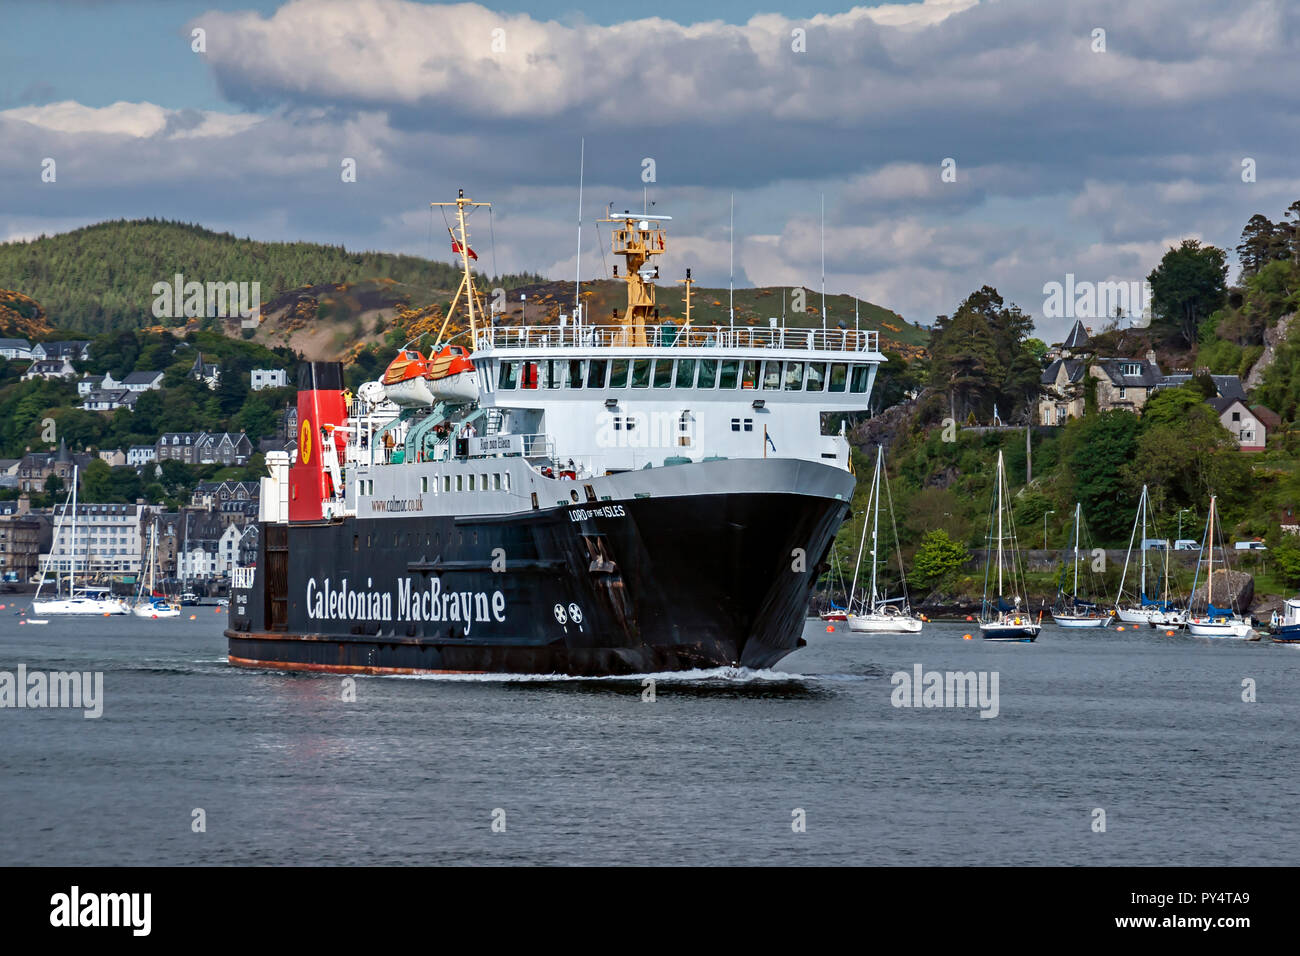 Caledoniann Macbrayne car and passenger vessel Lord of the Isles passing down Sound of Kerrera from Oban Argyll & Bute Scotland UK - Stock Image